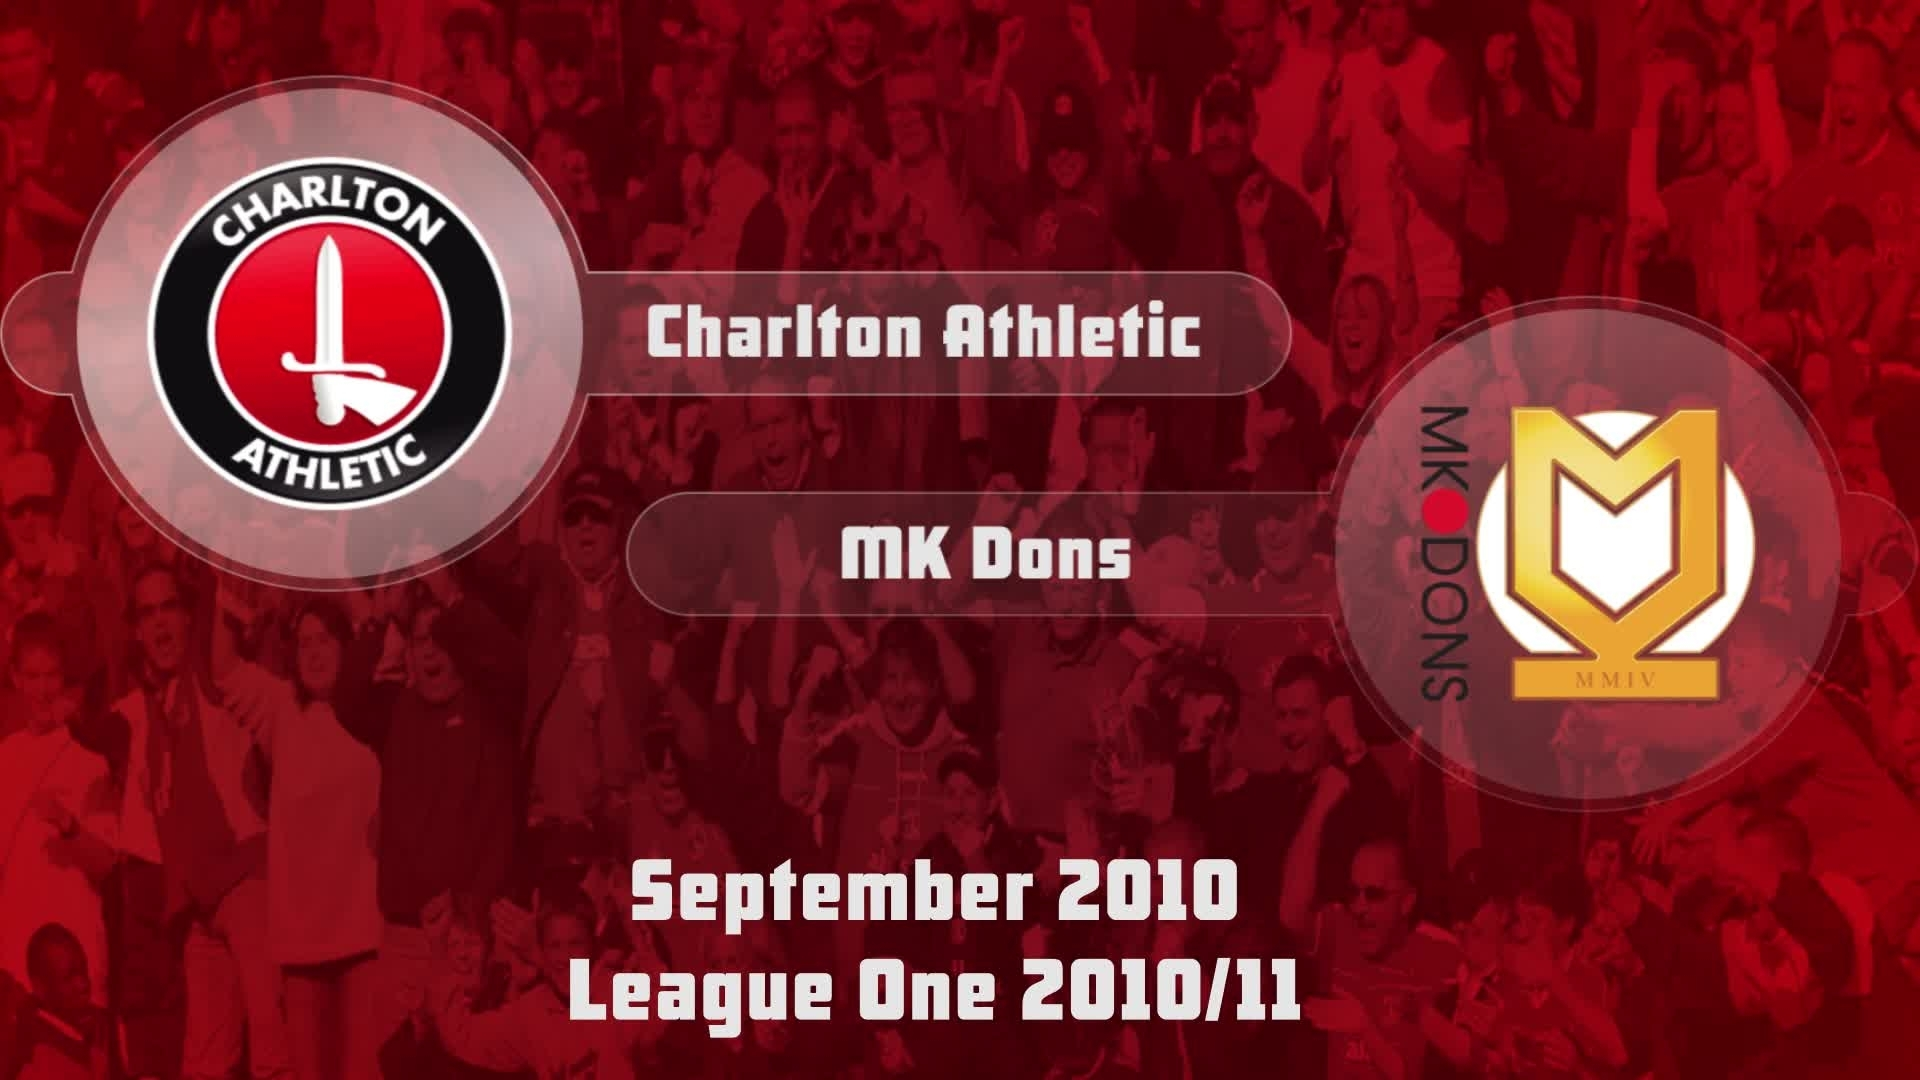 11 HIGHLIGHTS | Charlton 1 MK Dons 0 (Sept 2010)